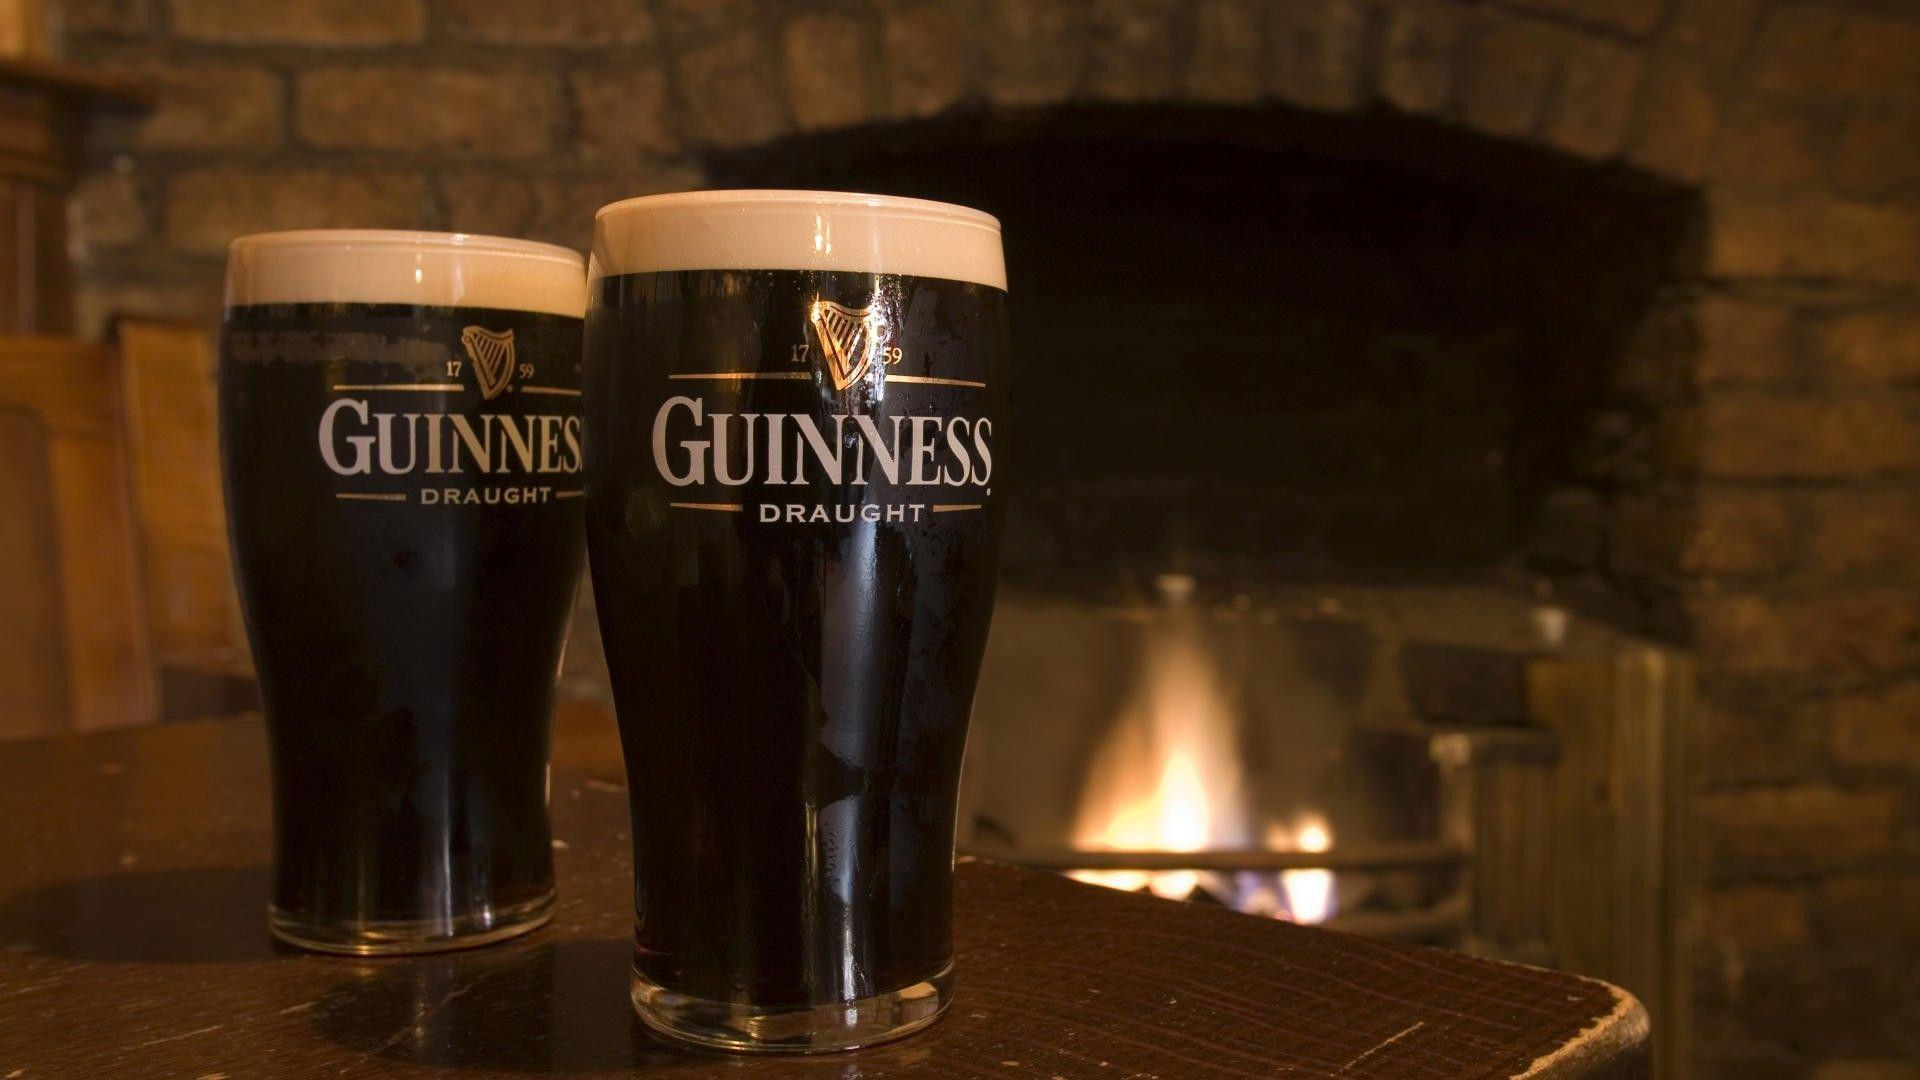 Wallpapers Guinness Beer Black 1920x1080PX ~ Guinness Wallpapers